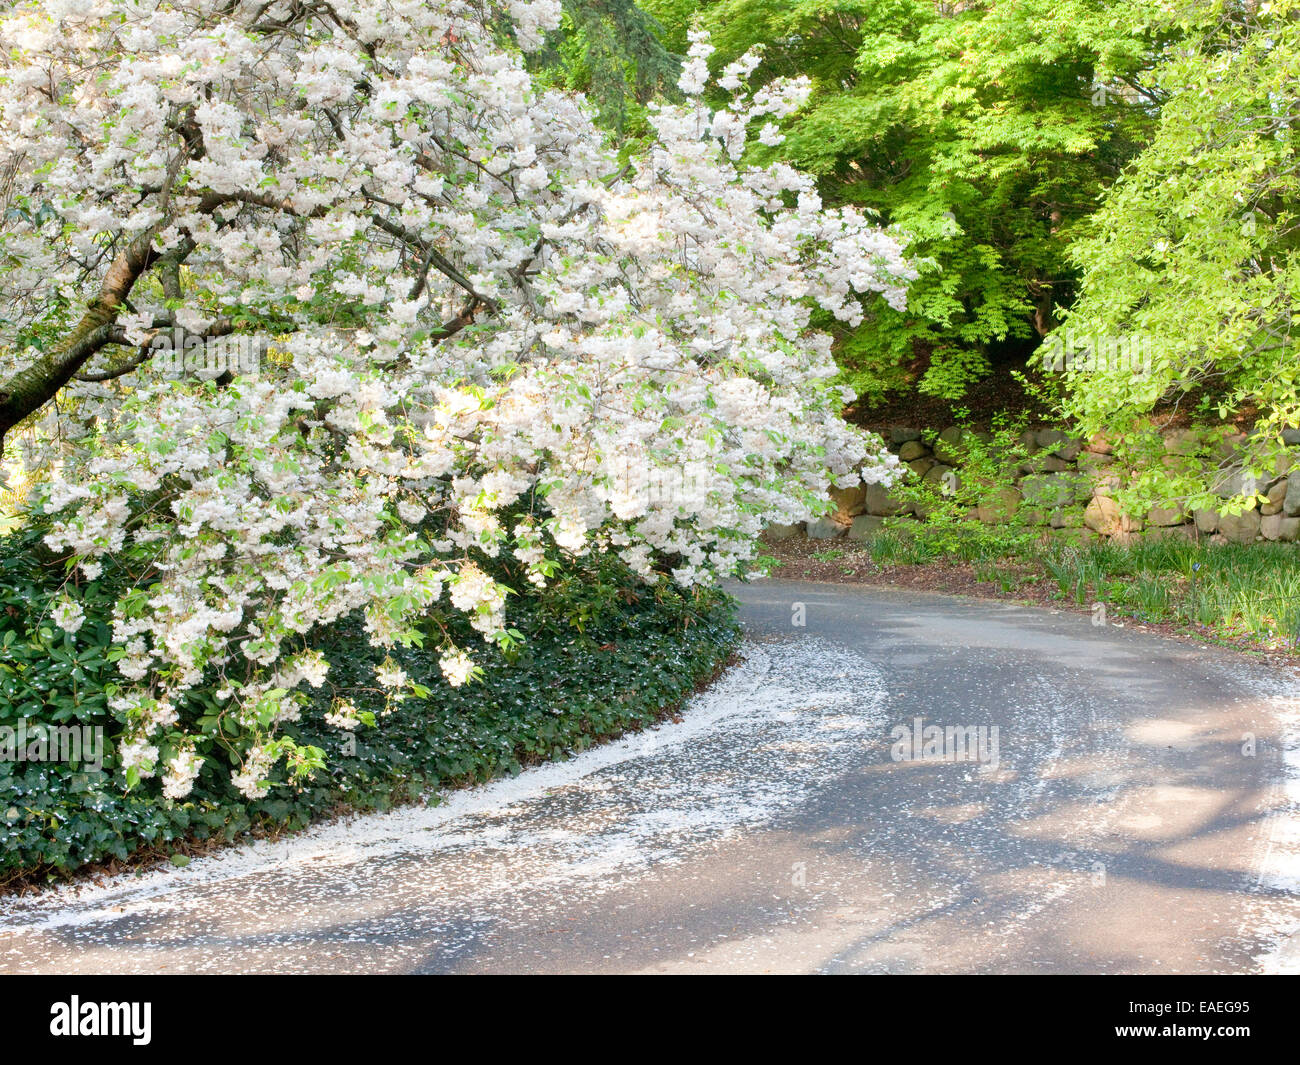 spring blossoms and fallen flower petals on tree and  along road - Stock Image